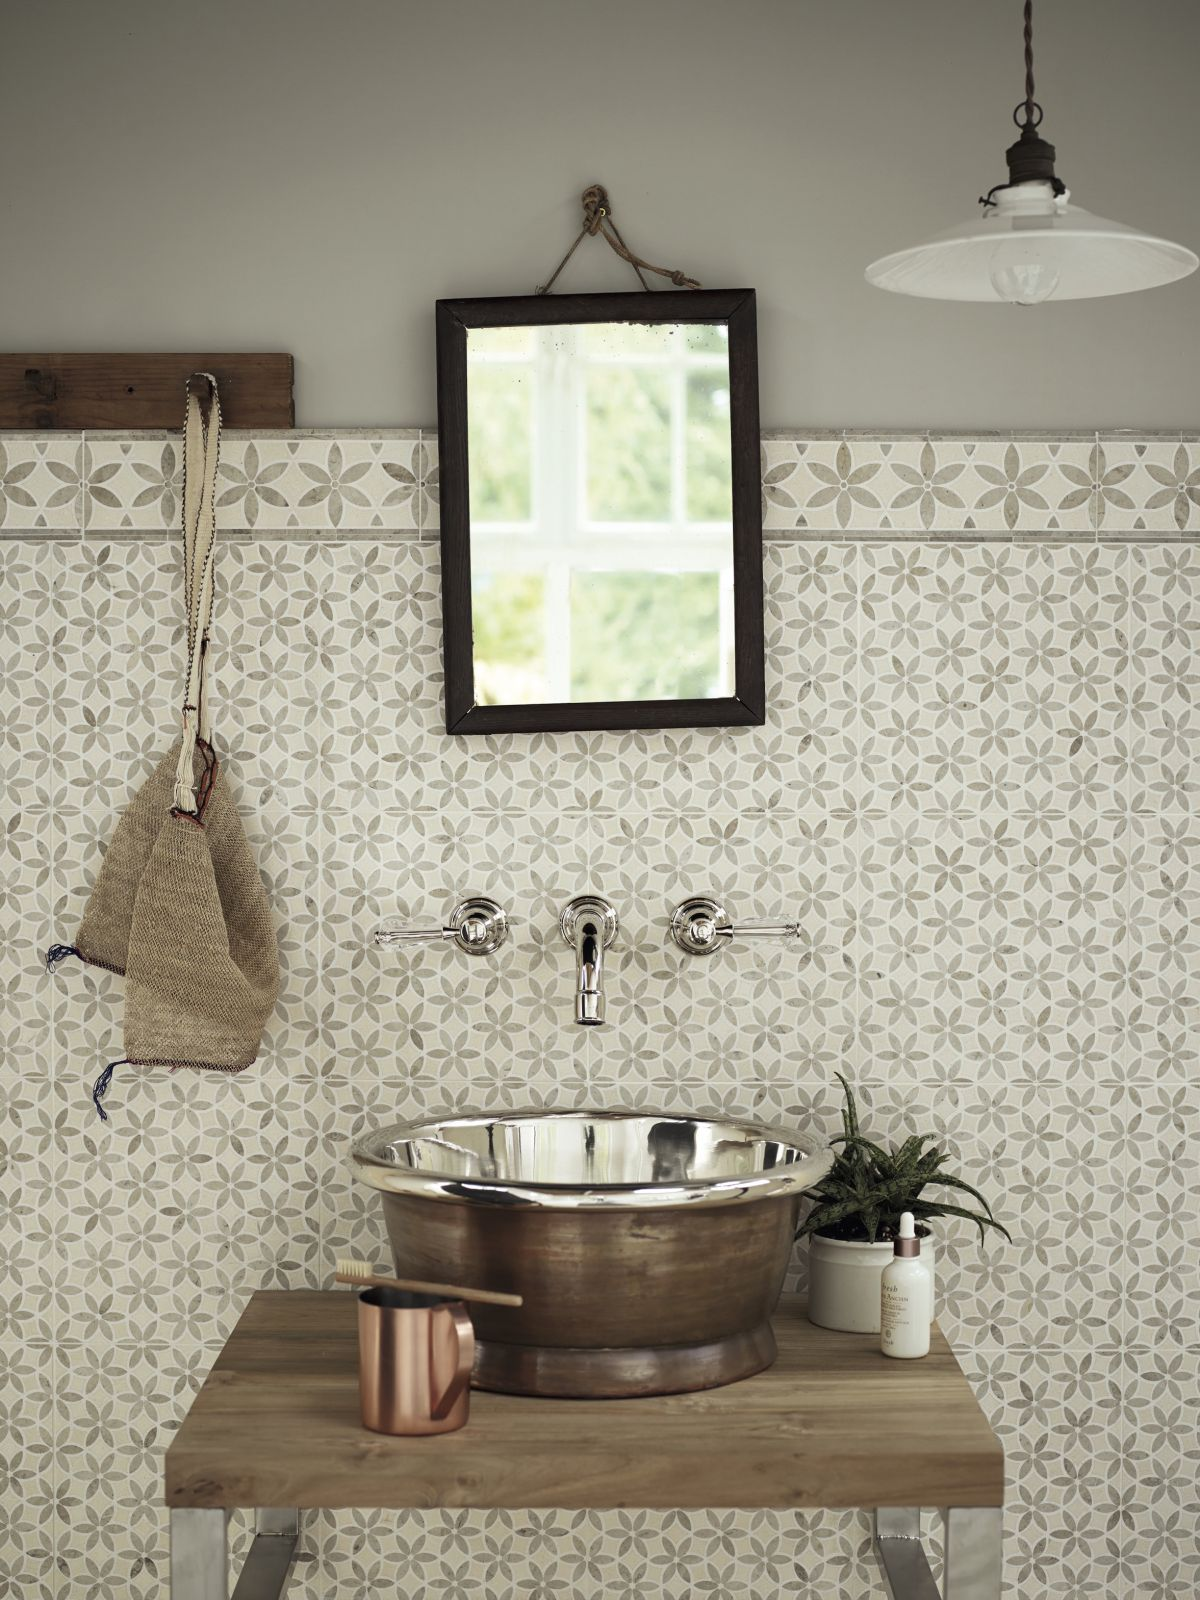 How To Choose Tiles For A Small Bathroom